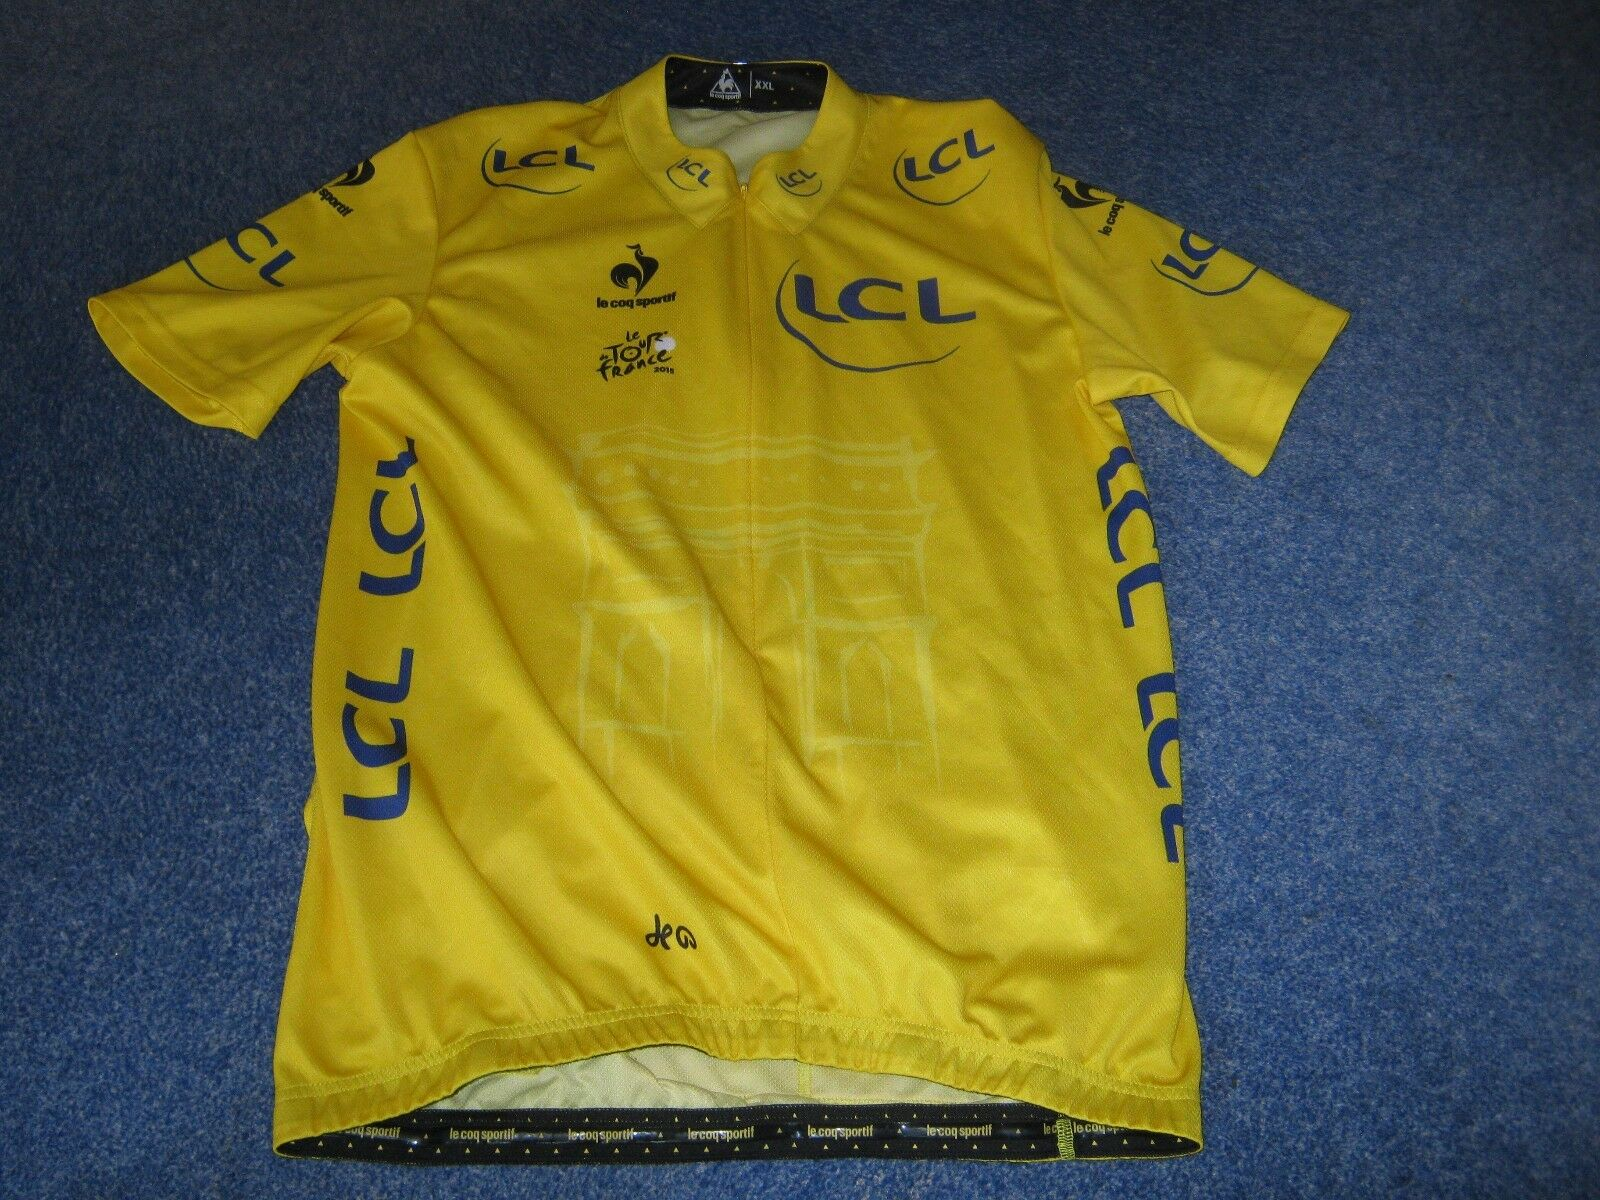 TOUR DE FRANCE 2015 LCS YELLOW LEADERS CYCLING JERSEY [XXL]